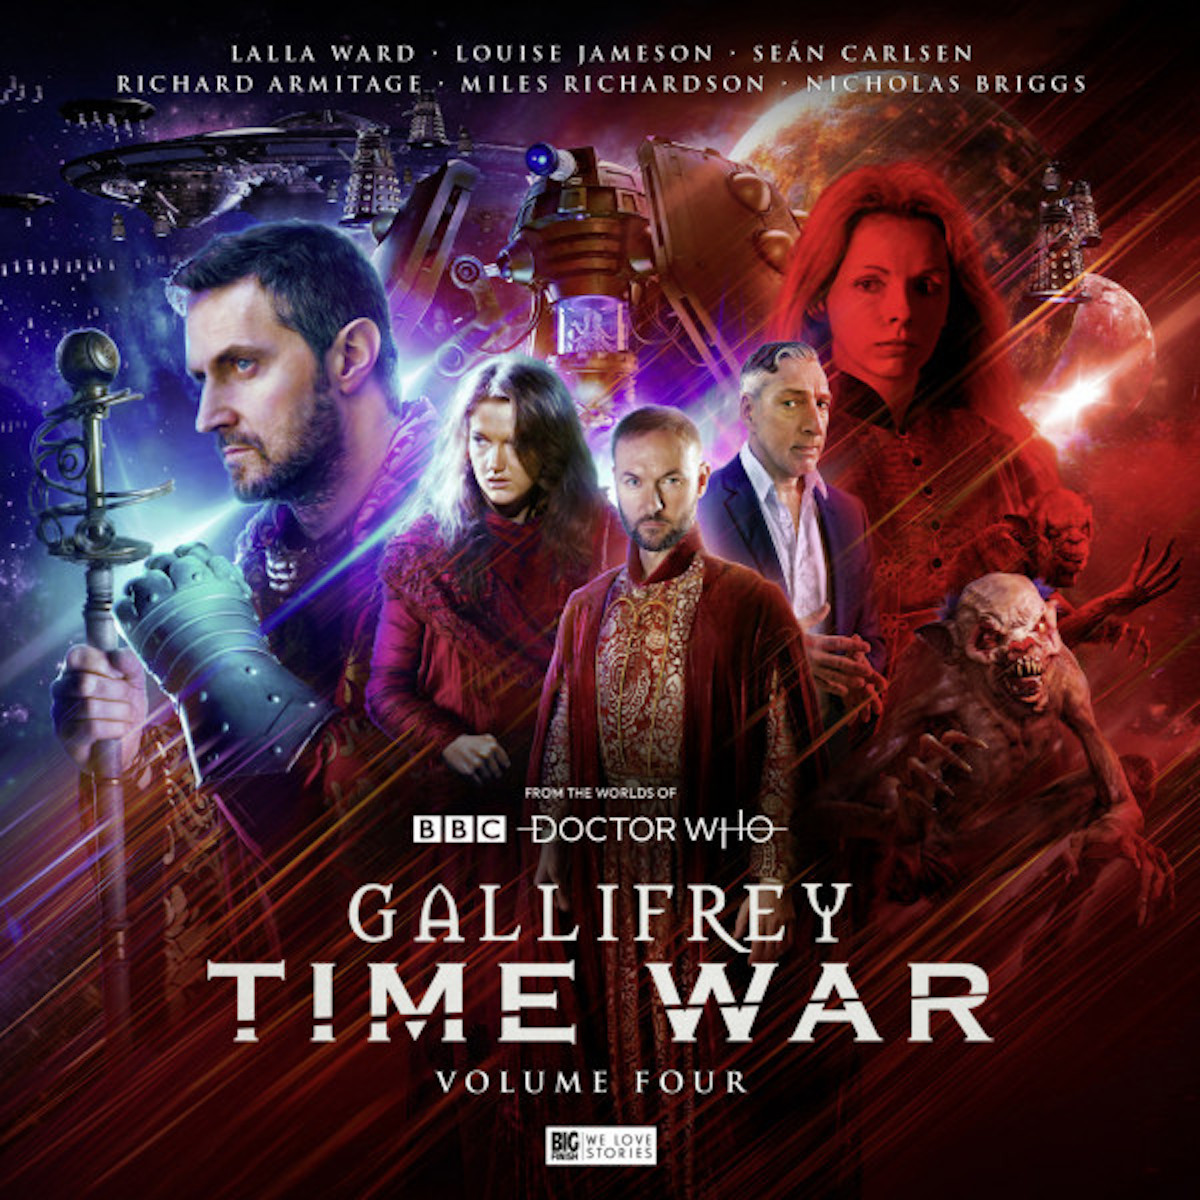 Gallifrey Time War Volume 4